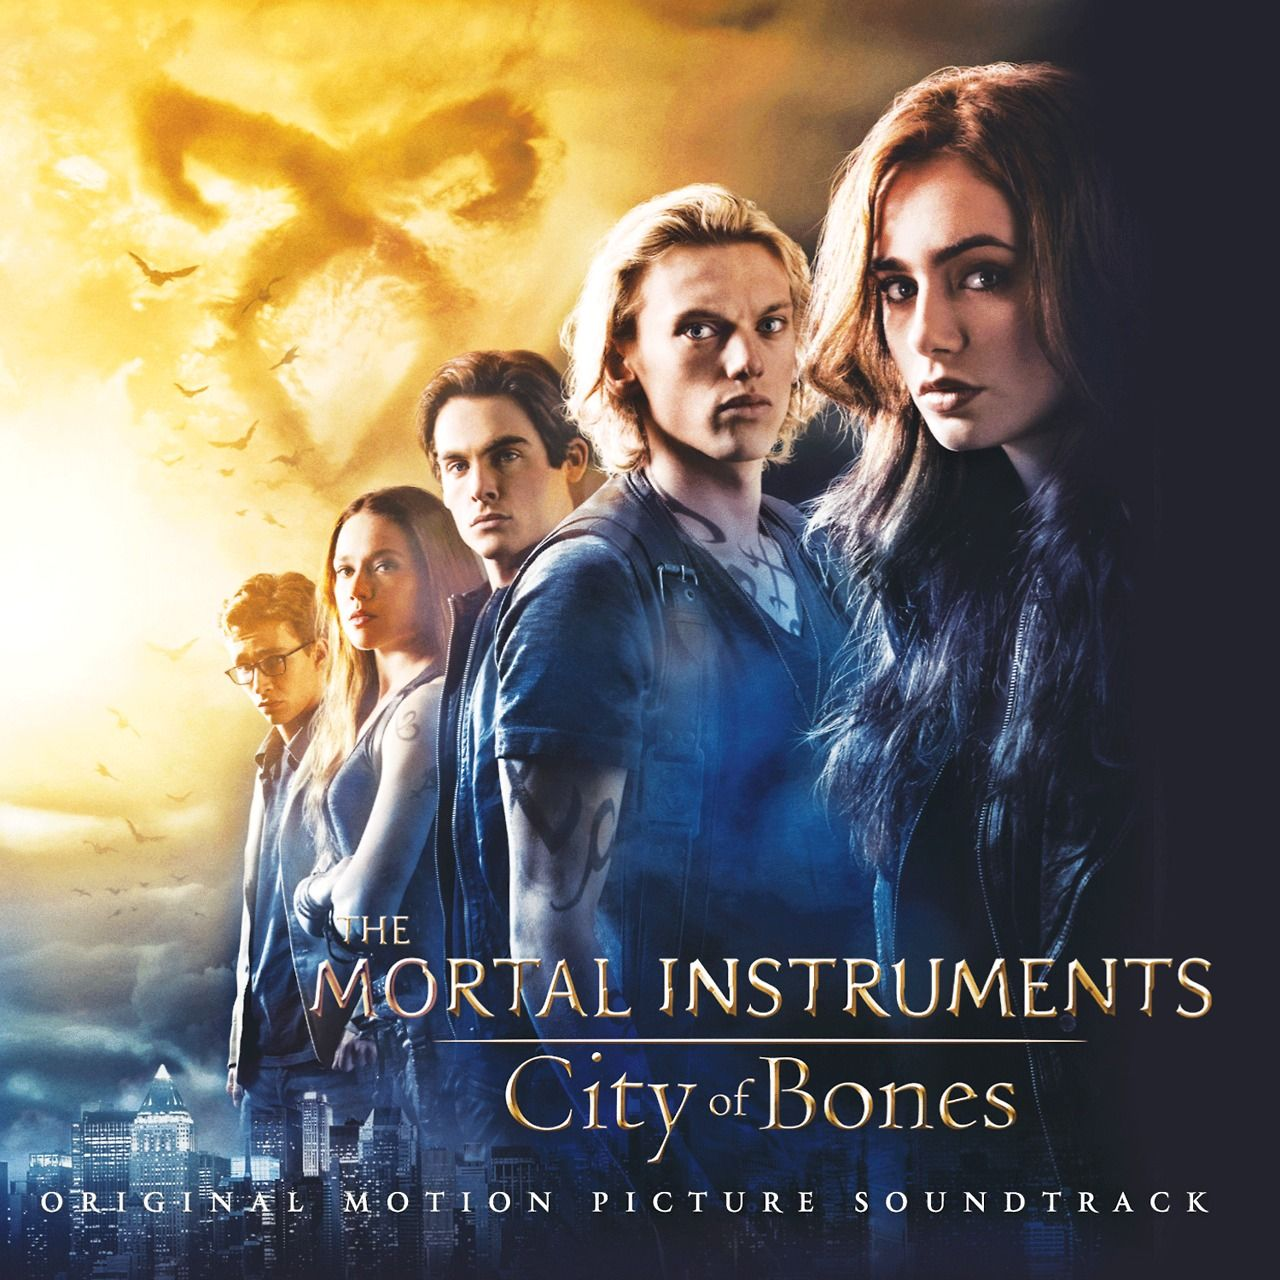 Get ready for a visit to The Mortal Instruments download the OFFICIAL  SOUNDTRACK now! | To the bone movie, City of bones, The mortal instruments